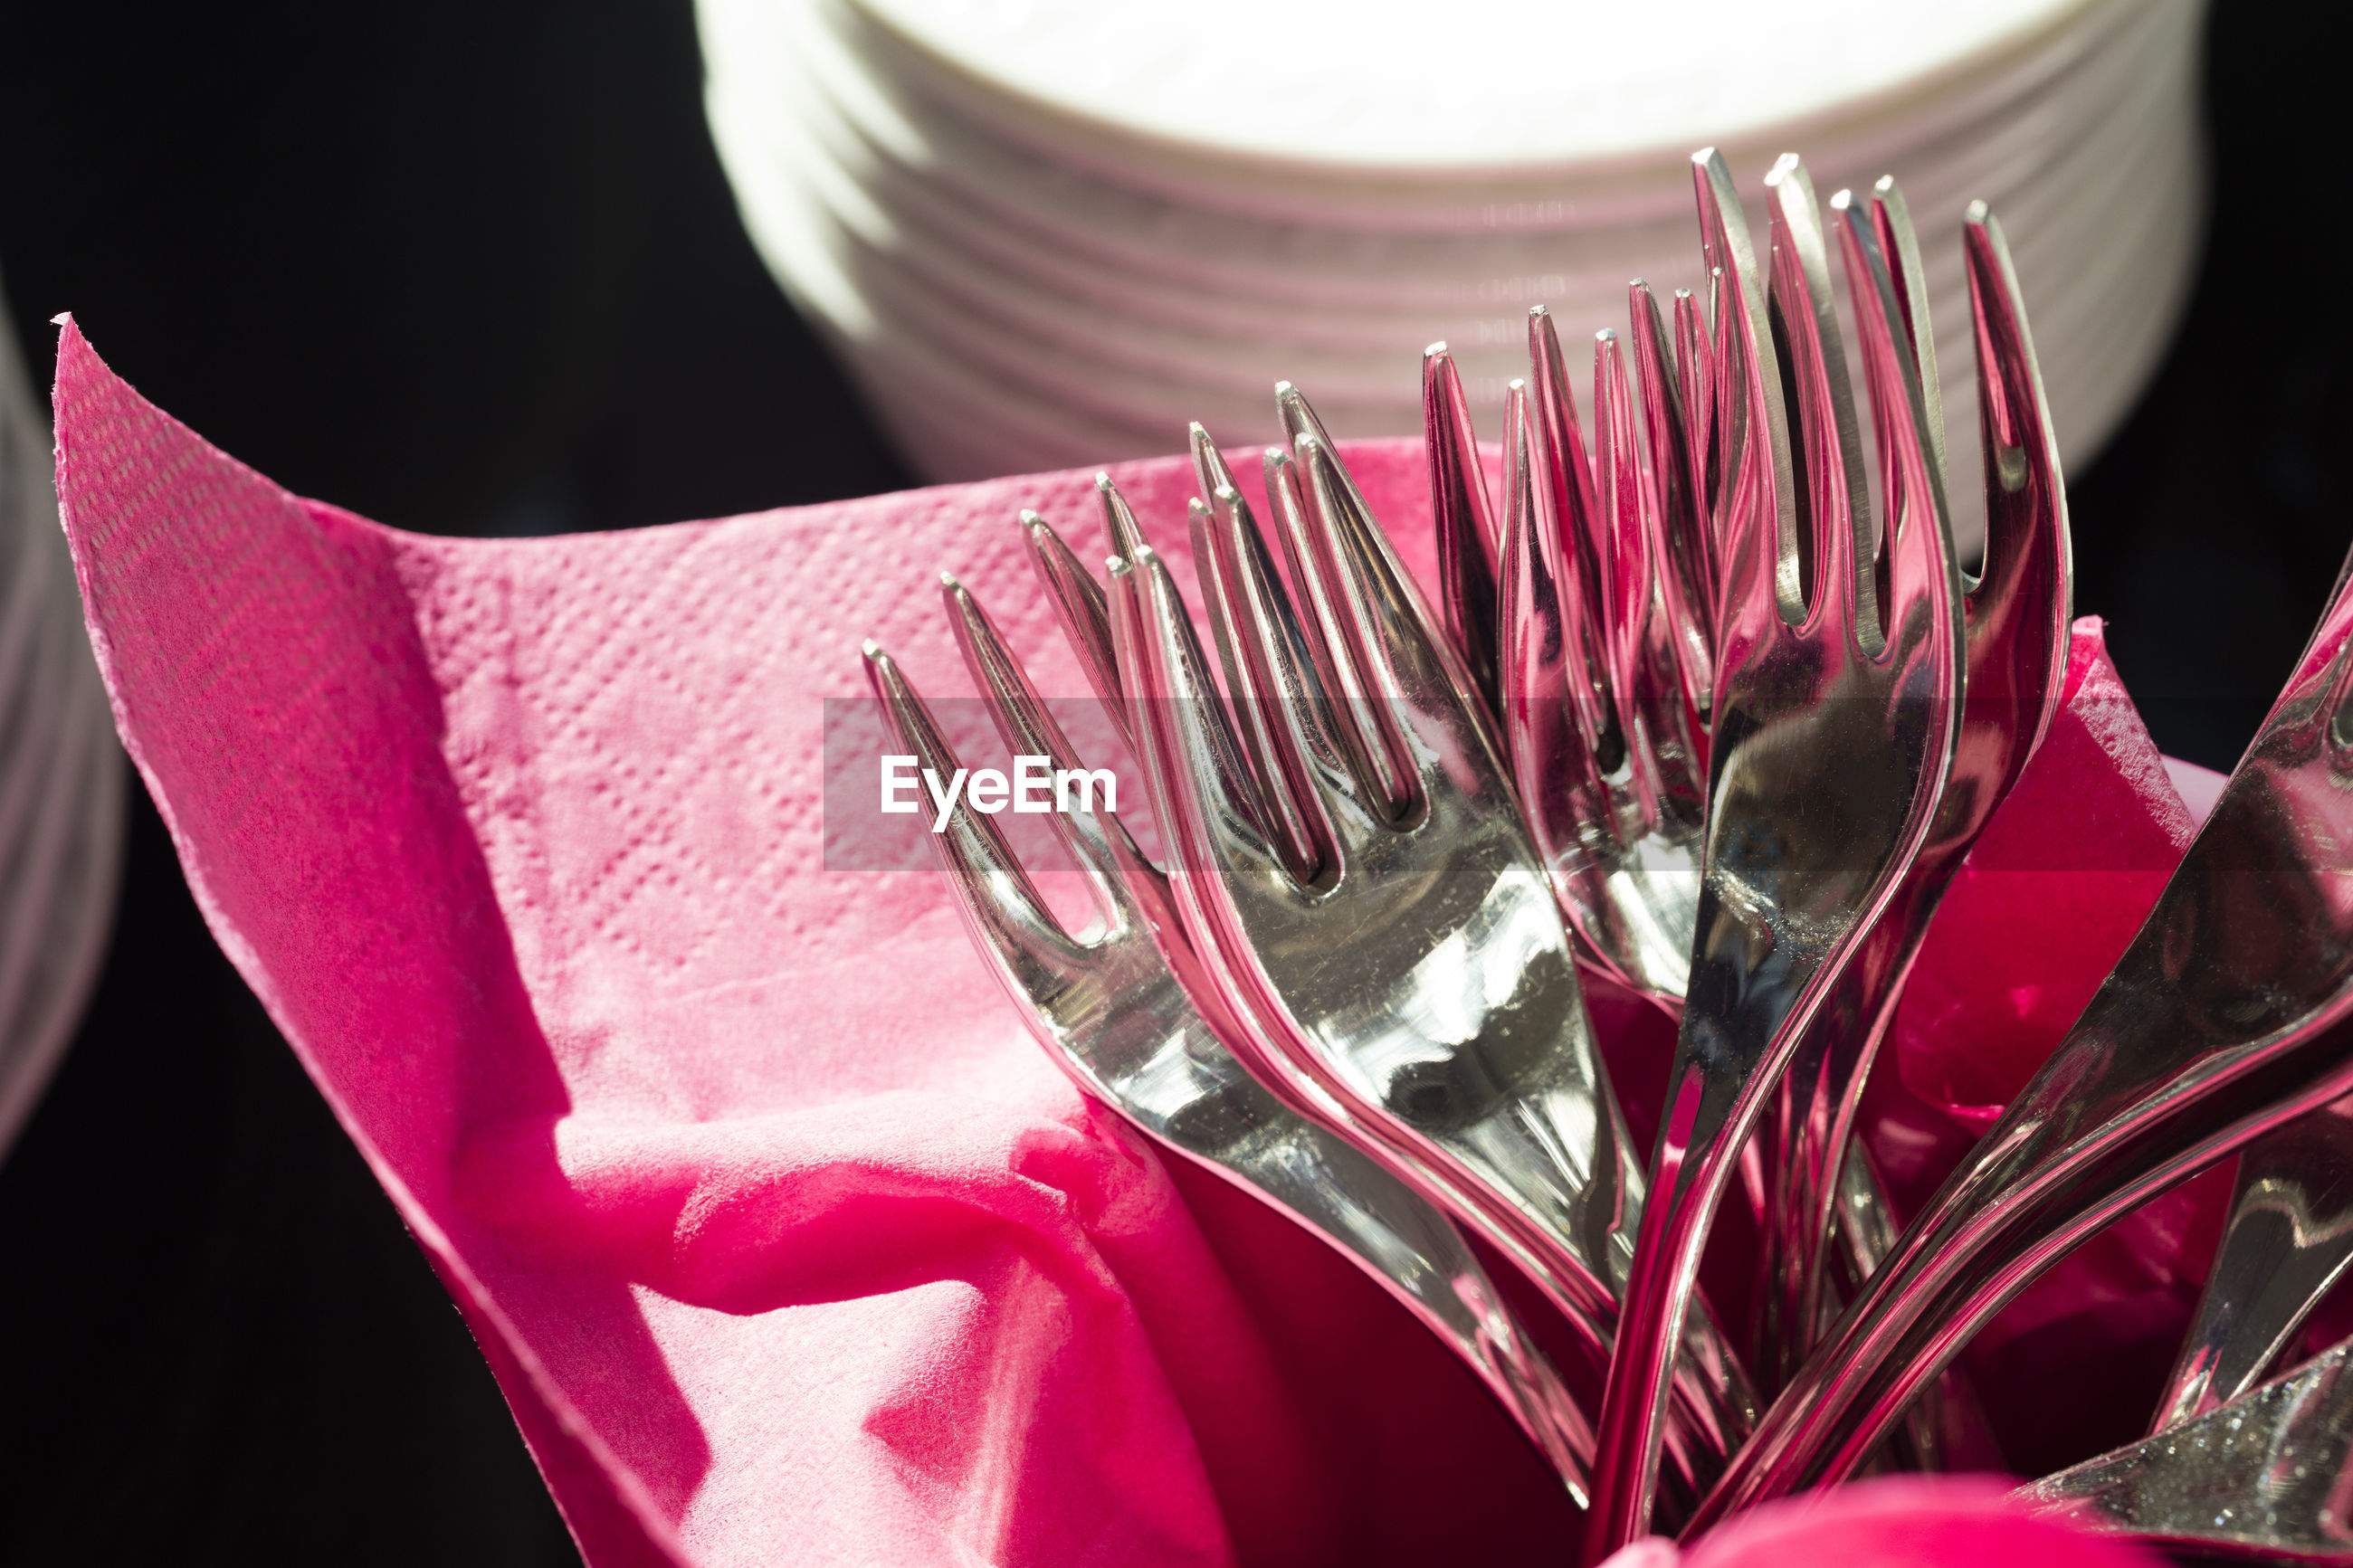 Close-up of forks by pink tissue by crockery against black background